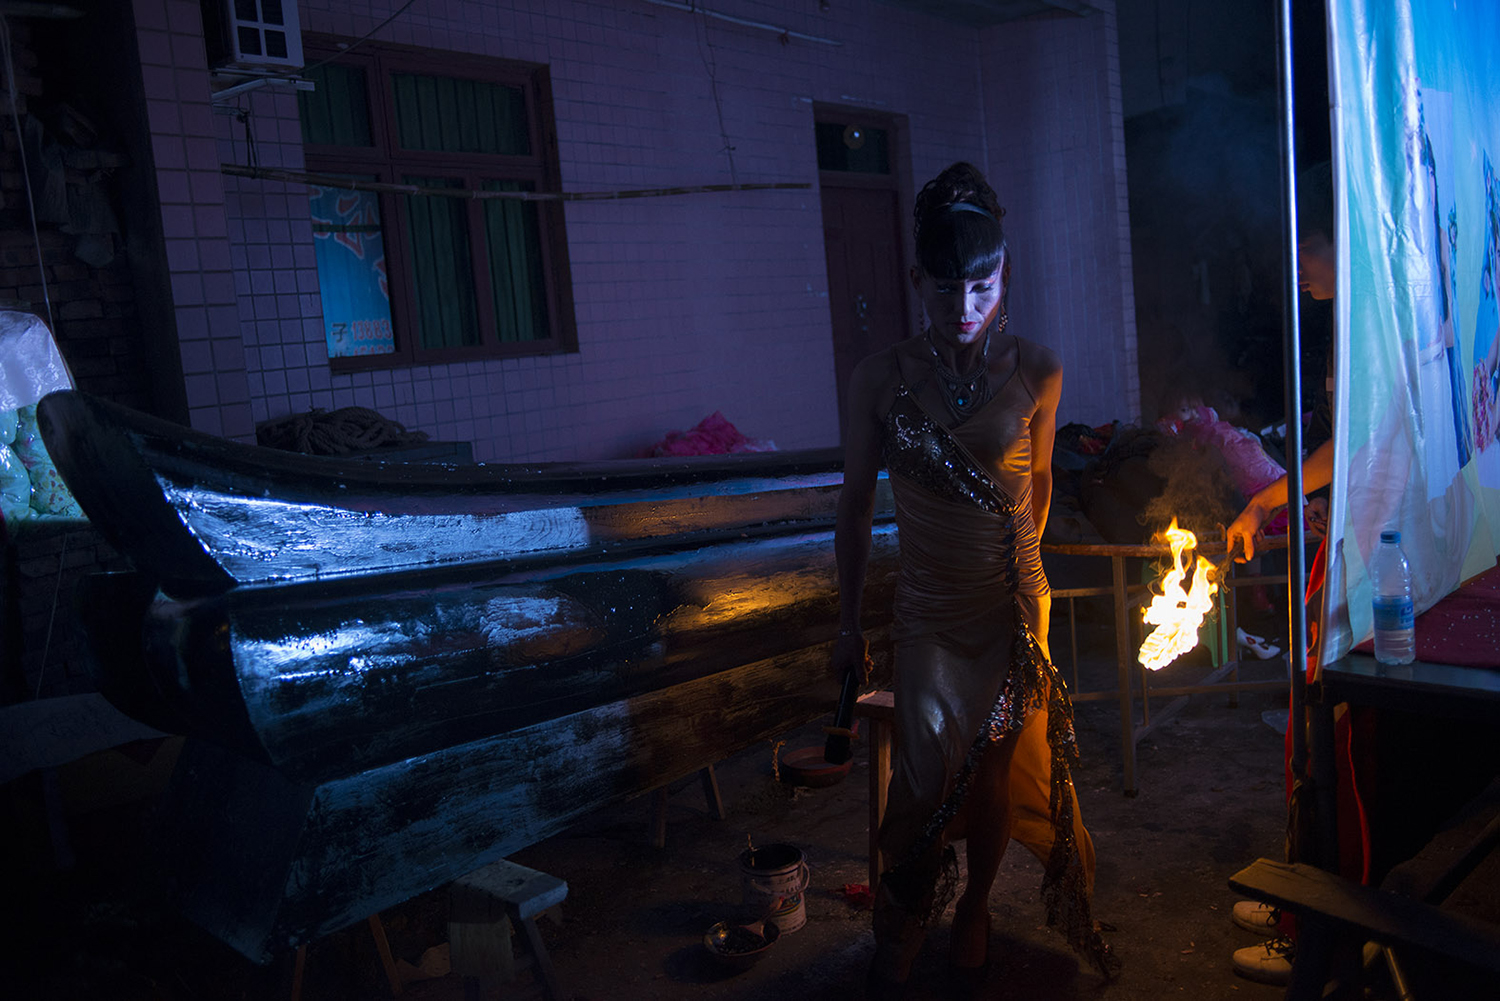 Liangzi walks in front of a coffin, October 28, 2014.